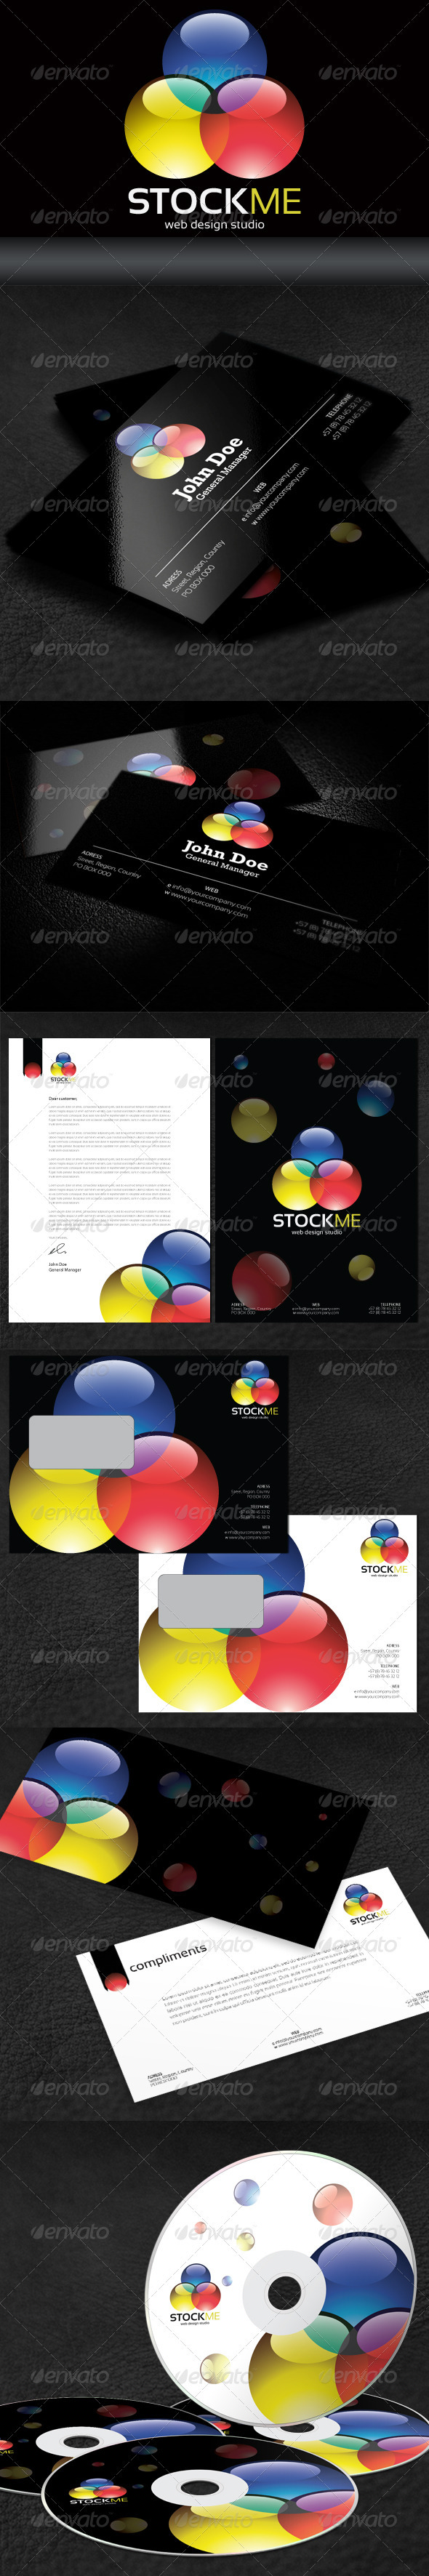 Stock Me Web Design Studio Corporate Identity - Stationery Print Templates